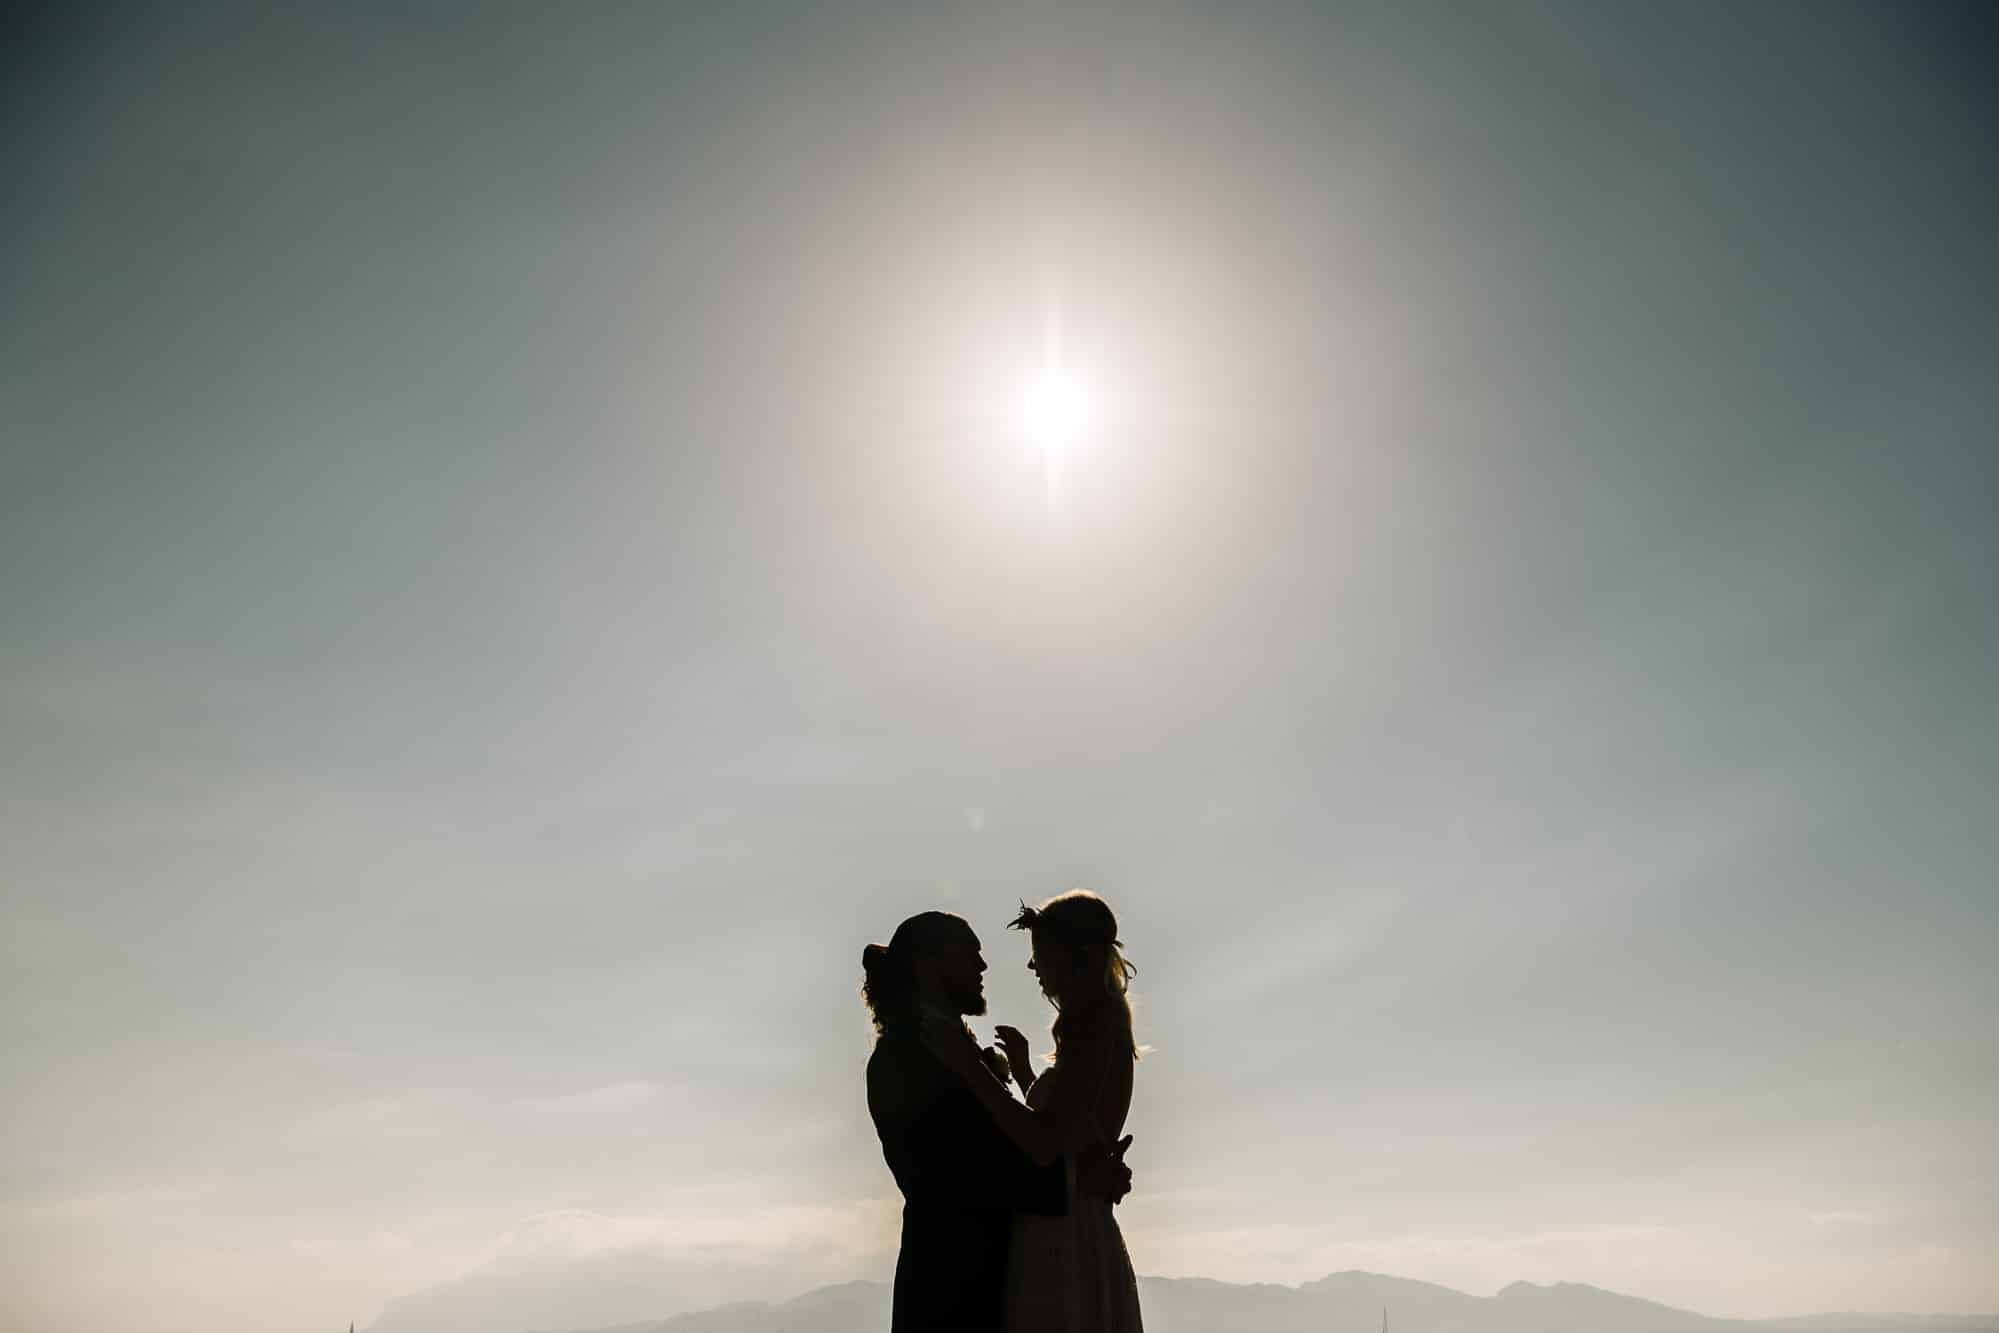 Silhouette shot of the couple